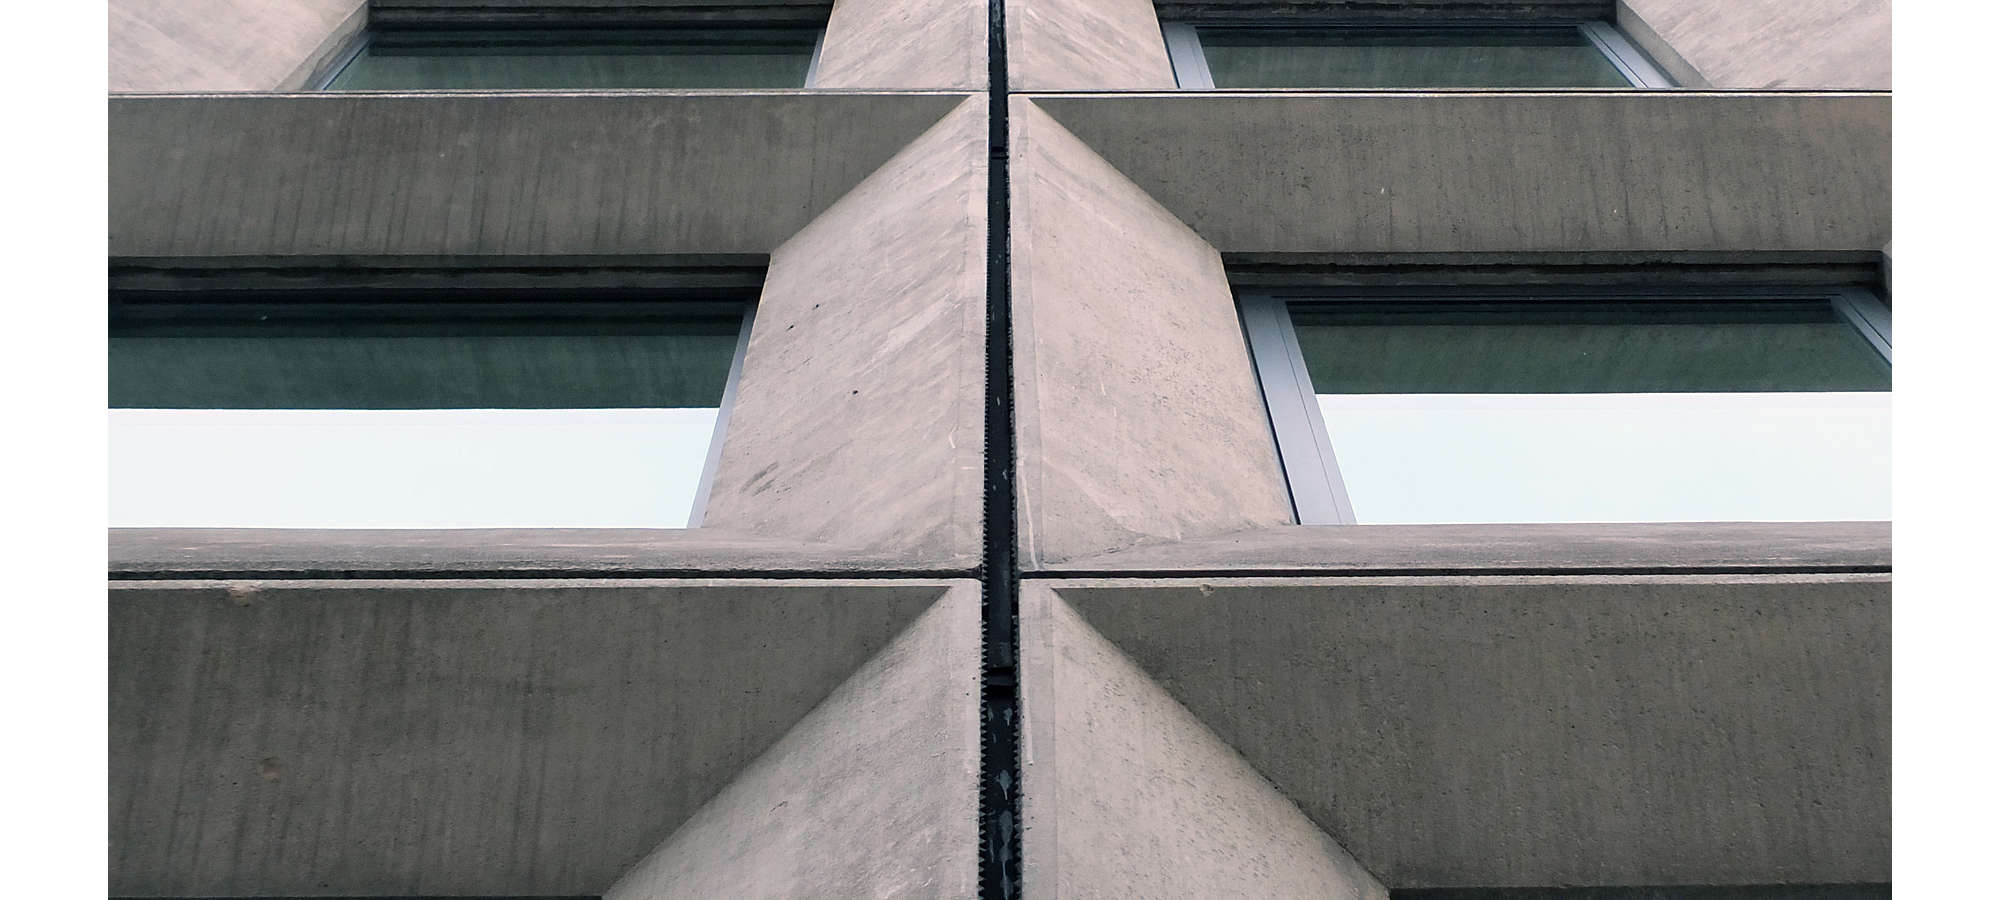 Geometric angular concrete windows